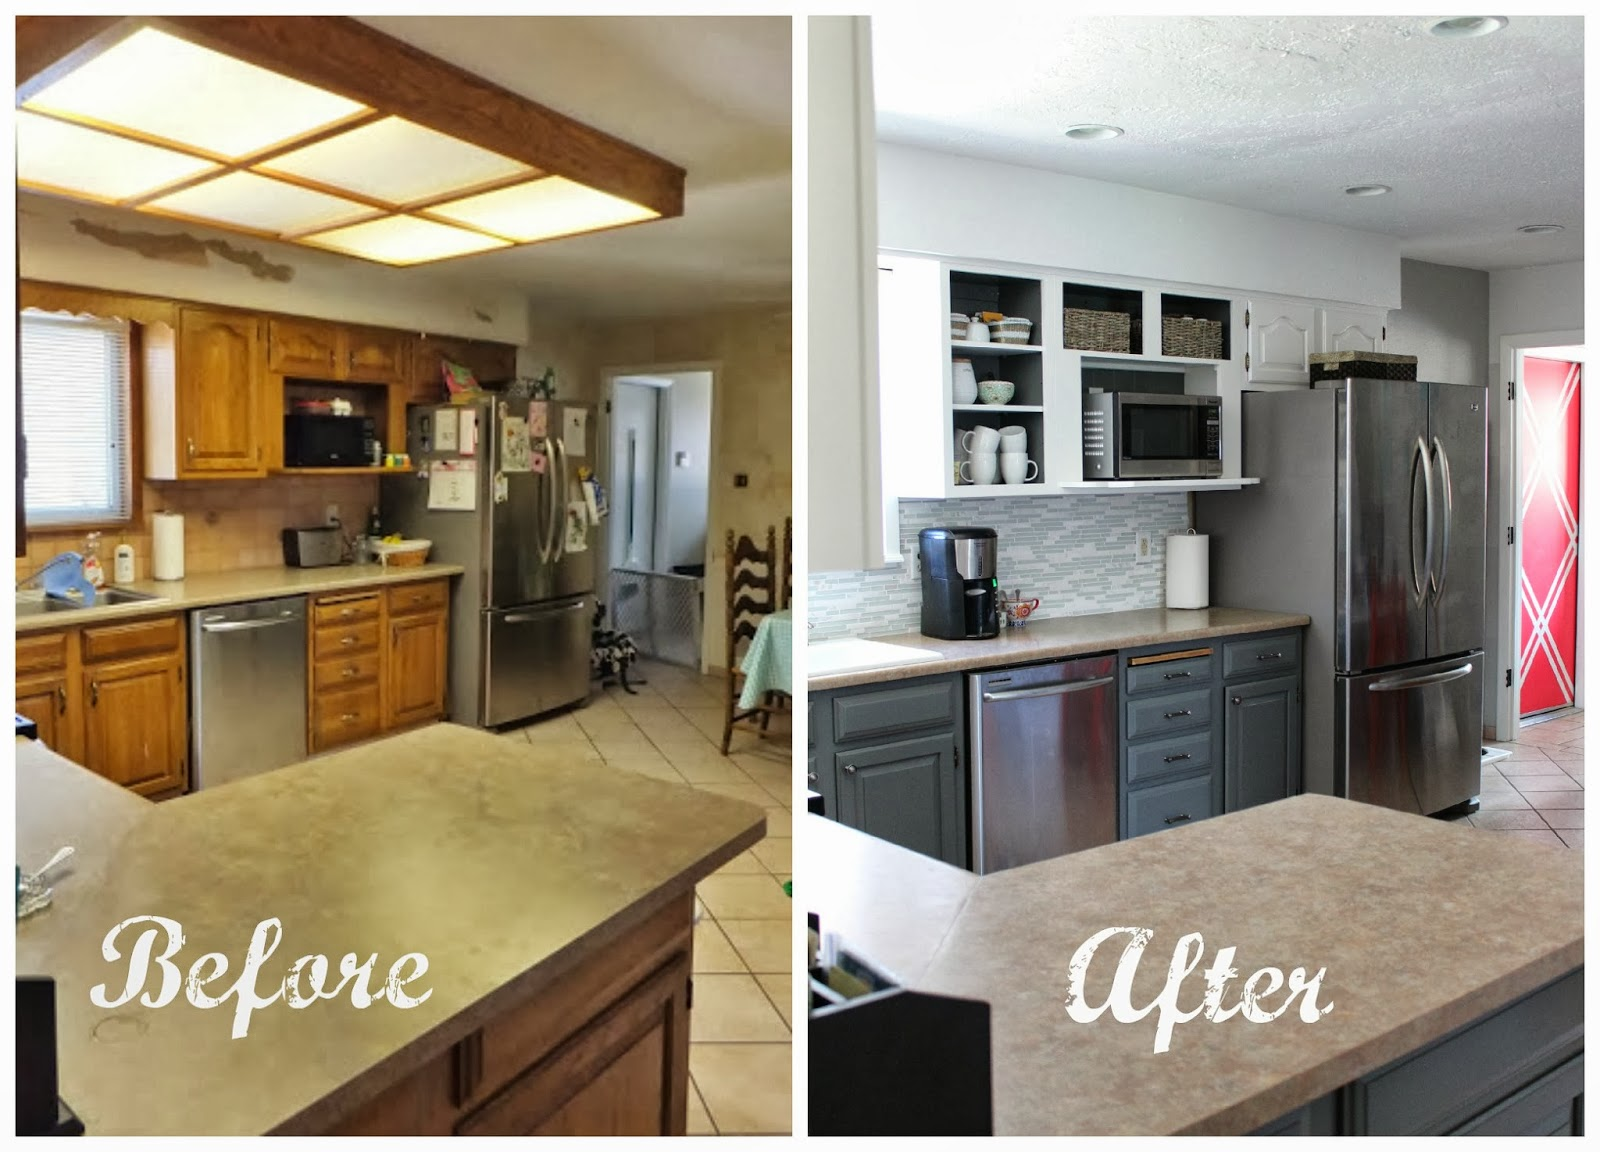 Vanity Kitchen Remodel Before And After Of They Design Grey White Pic On S Acnn Decor